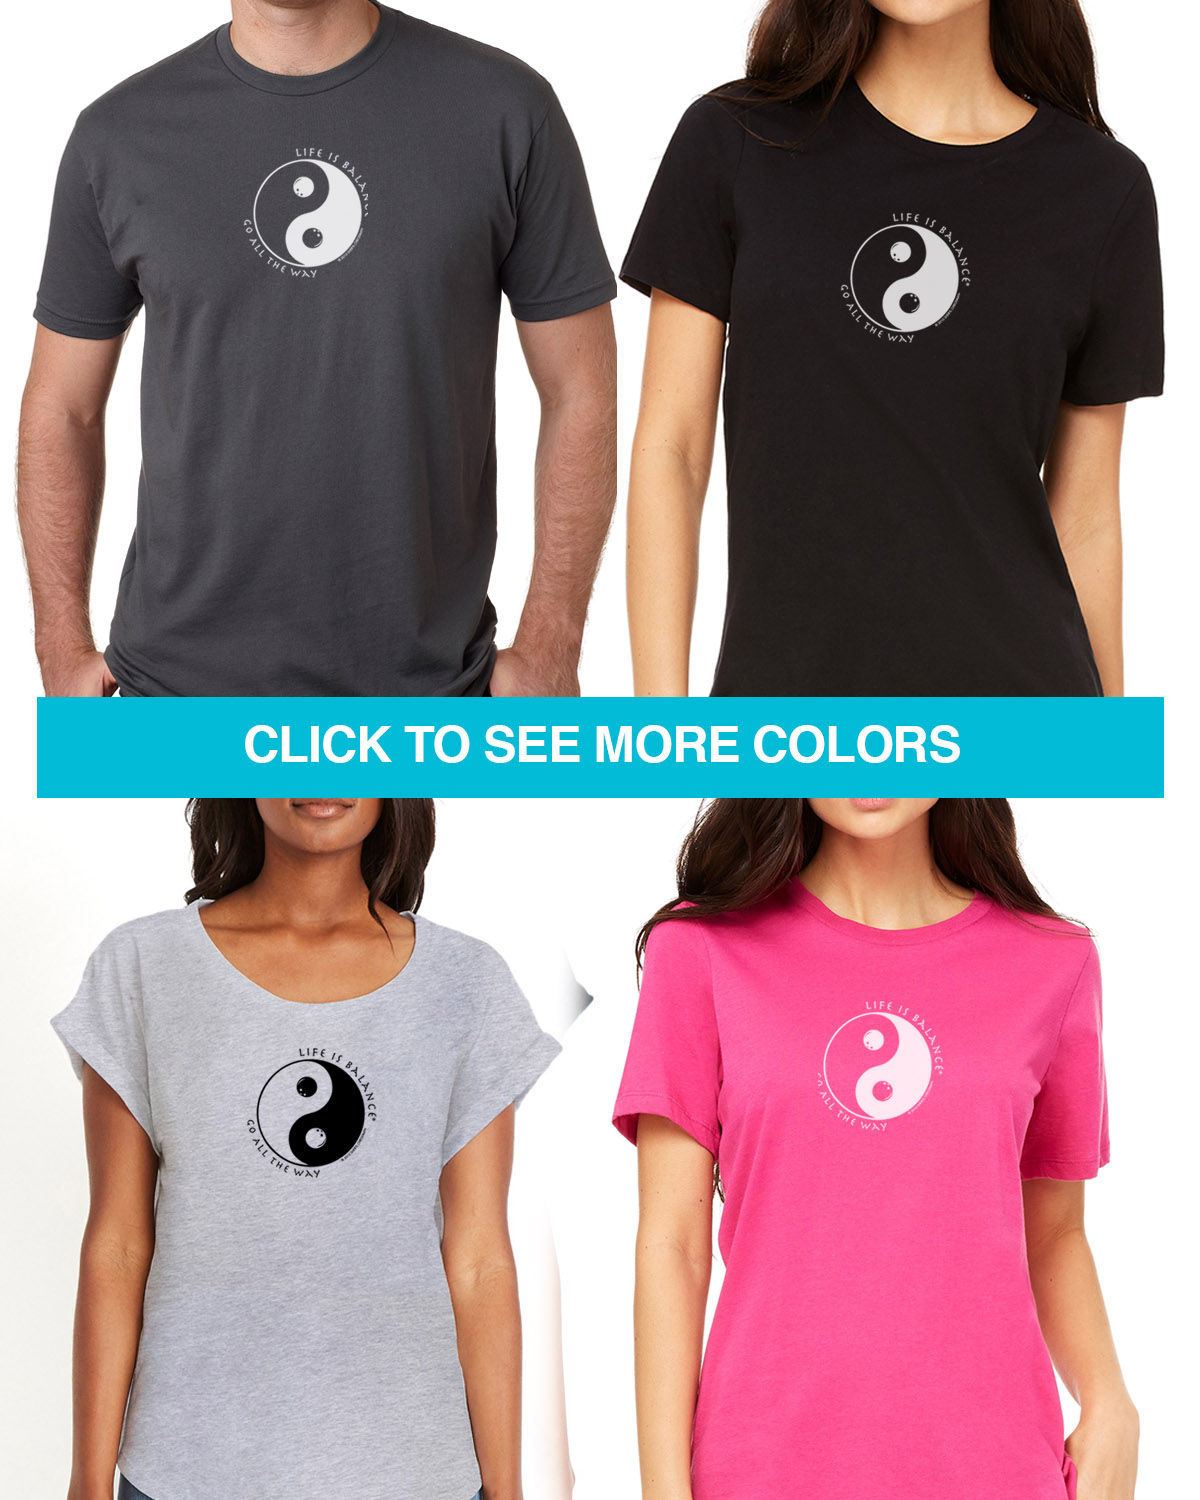 Bowling Tees for Men & WOmen